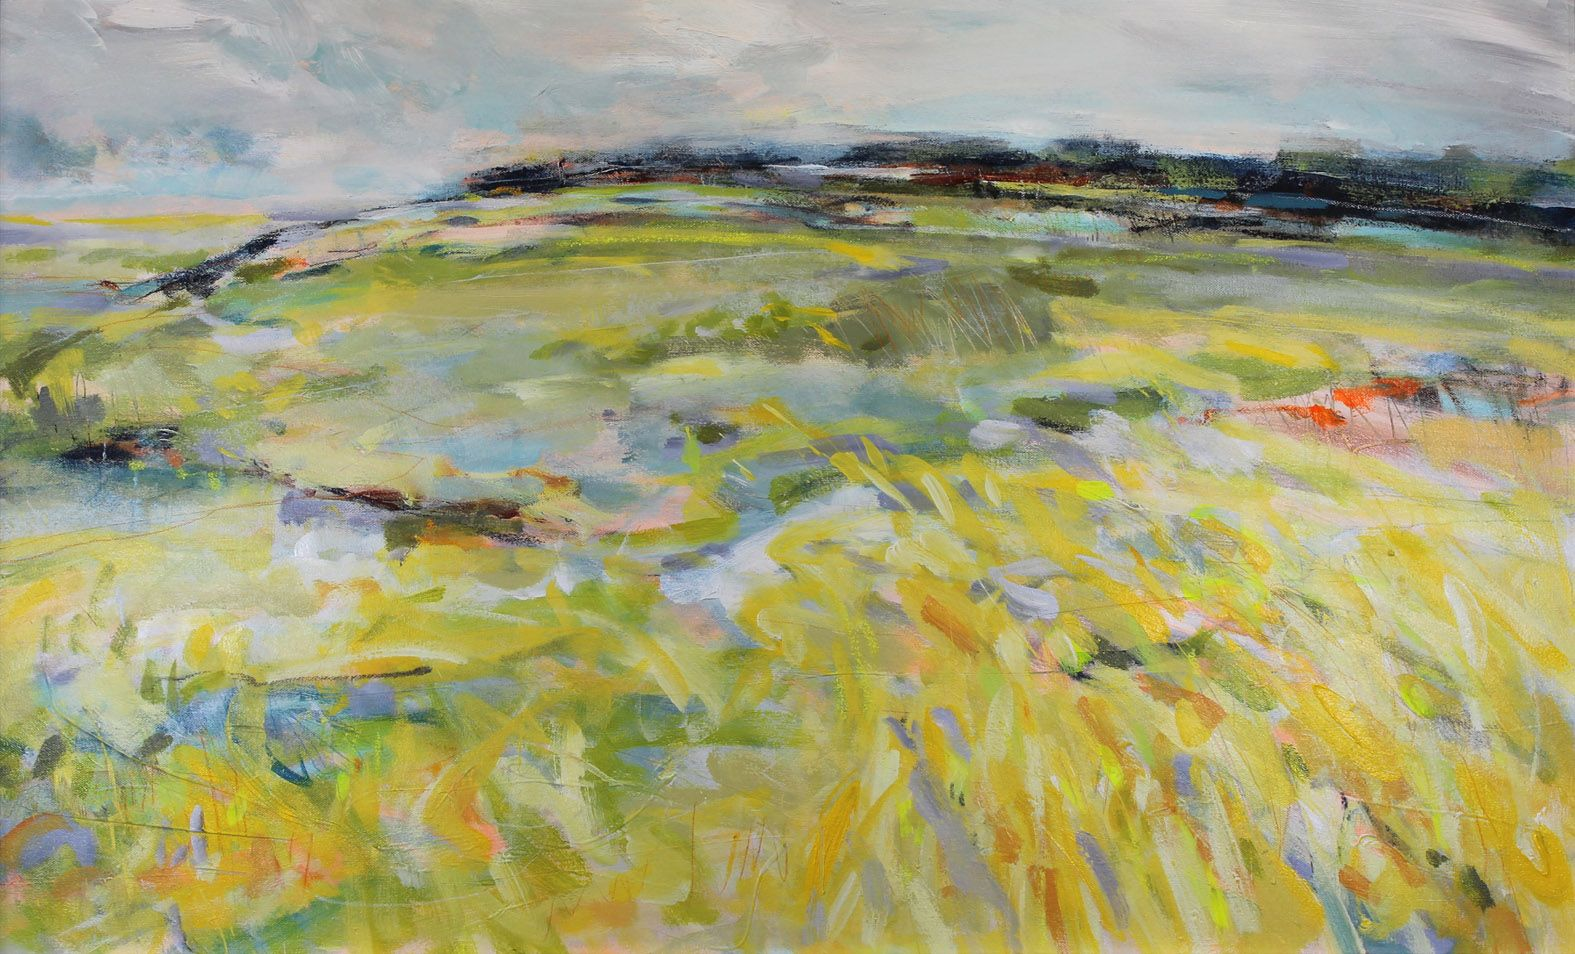 Modern impressionist style painting of yellow fields